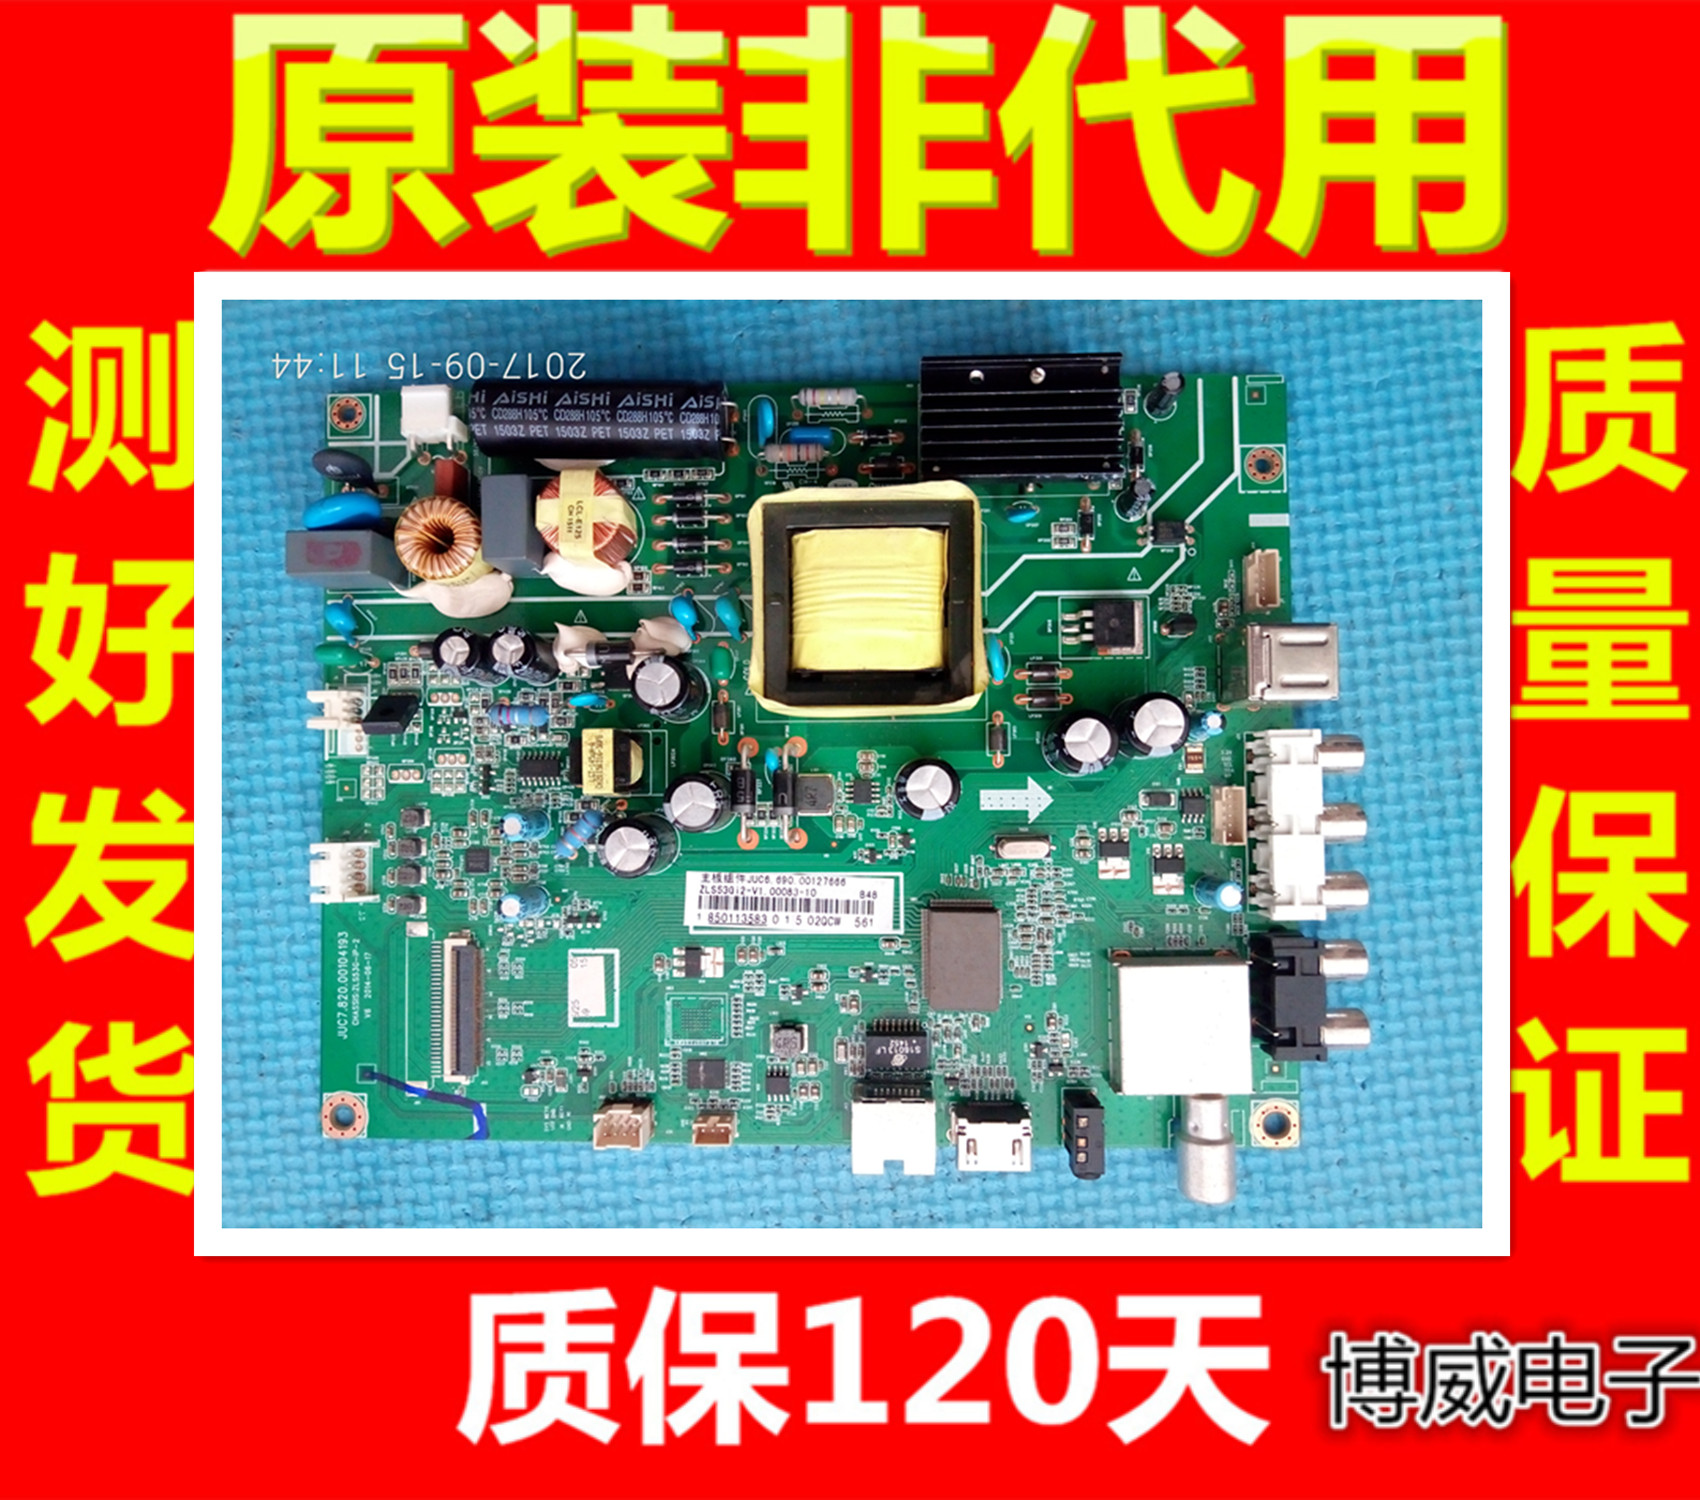 42 inch LCD flat panel TV, Changhong 42D2000N power backlight, high voltage power supply motherboard ZML66